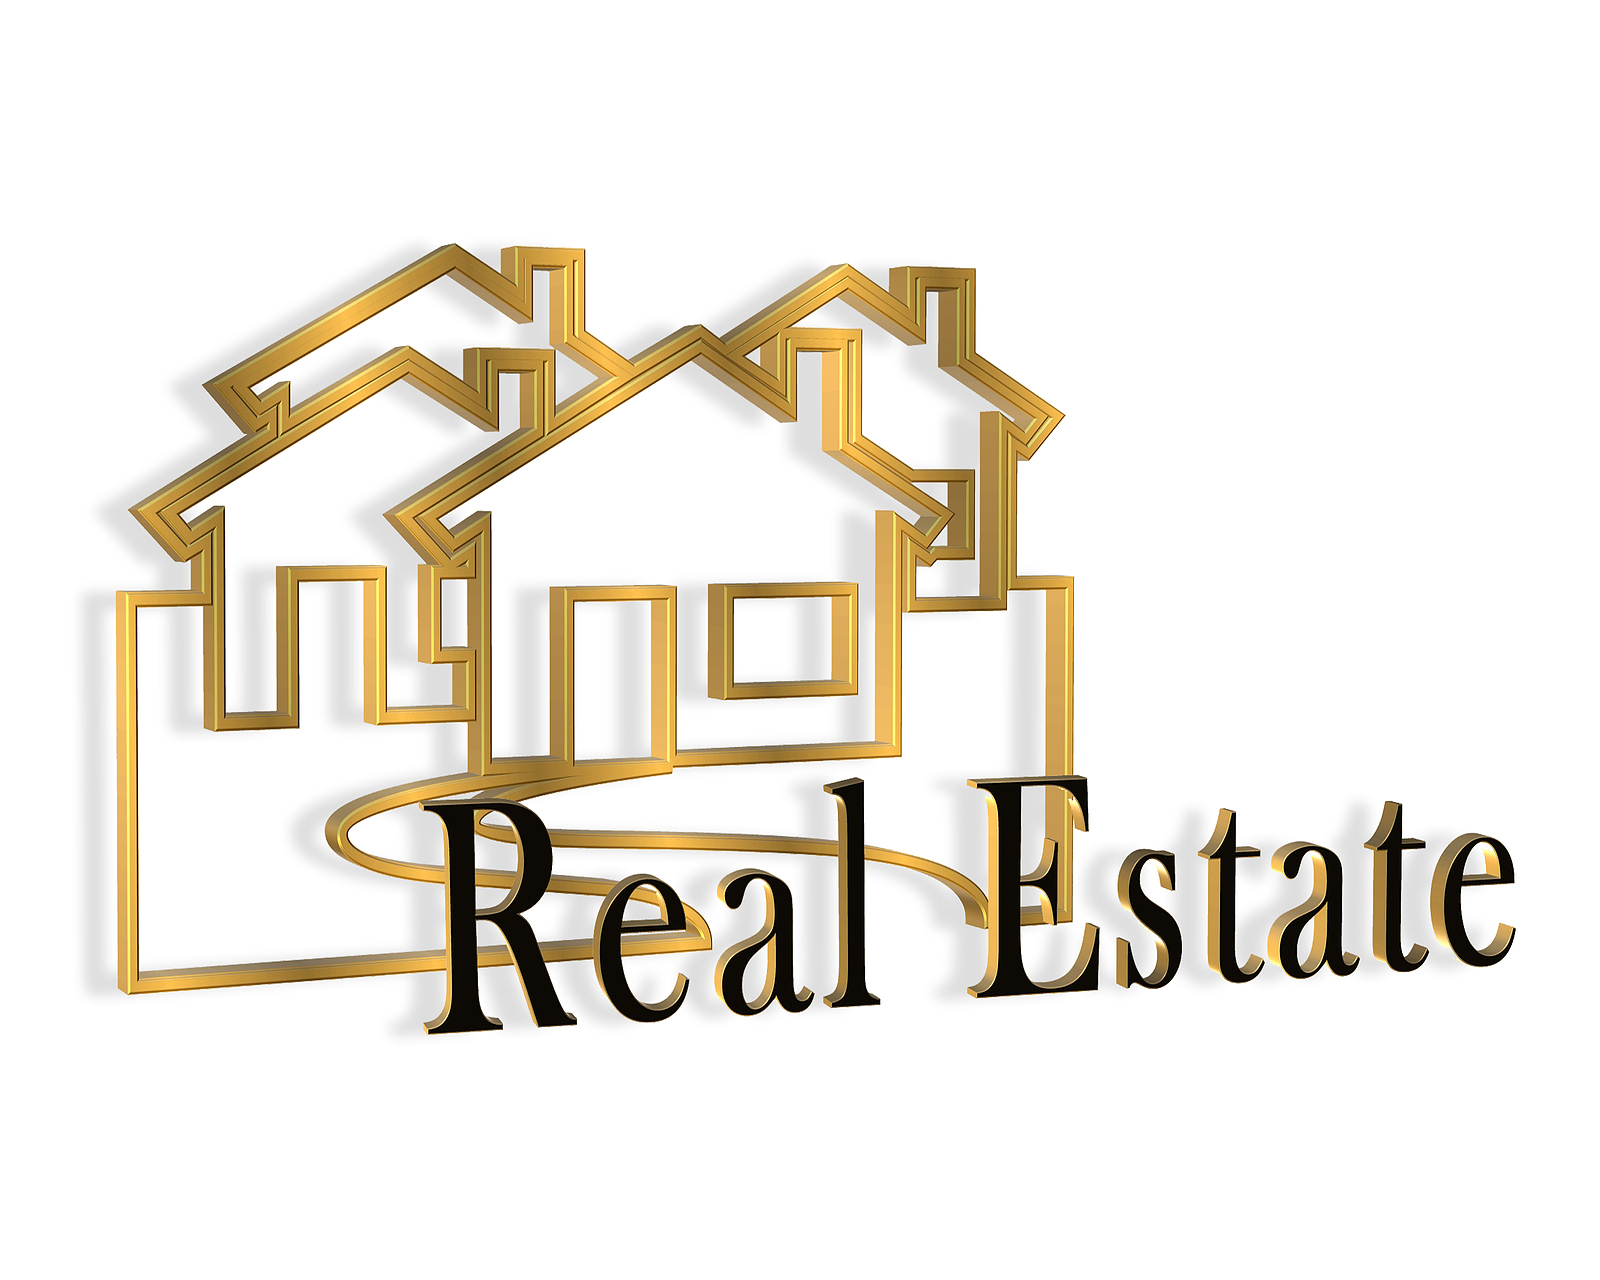 Native-Ads-Are-Not-Really-New-To-The-Real-Estate-Industry